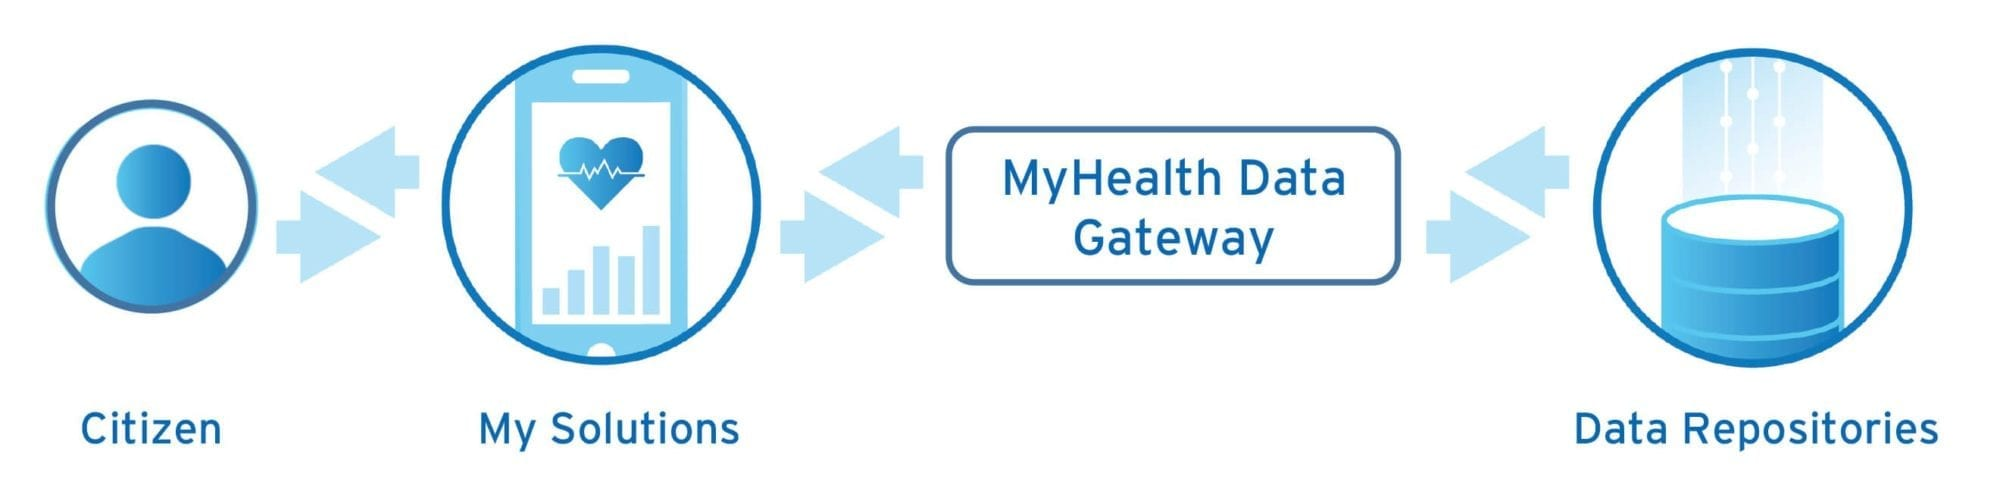 MyHealth is the data gateway between citizens, solutions and data repositories.